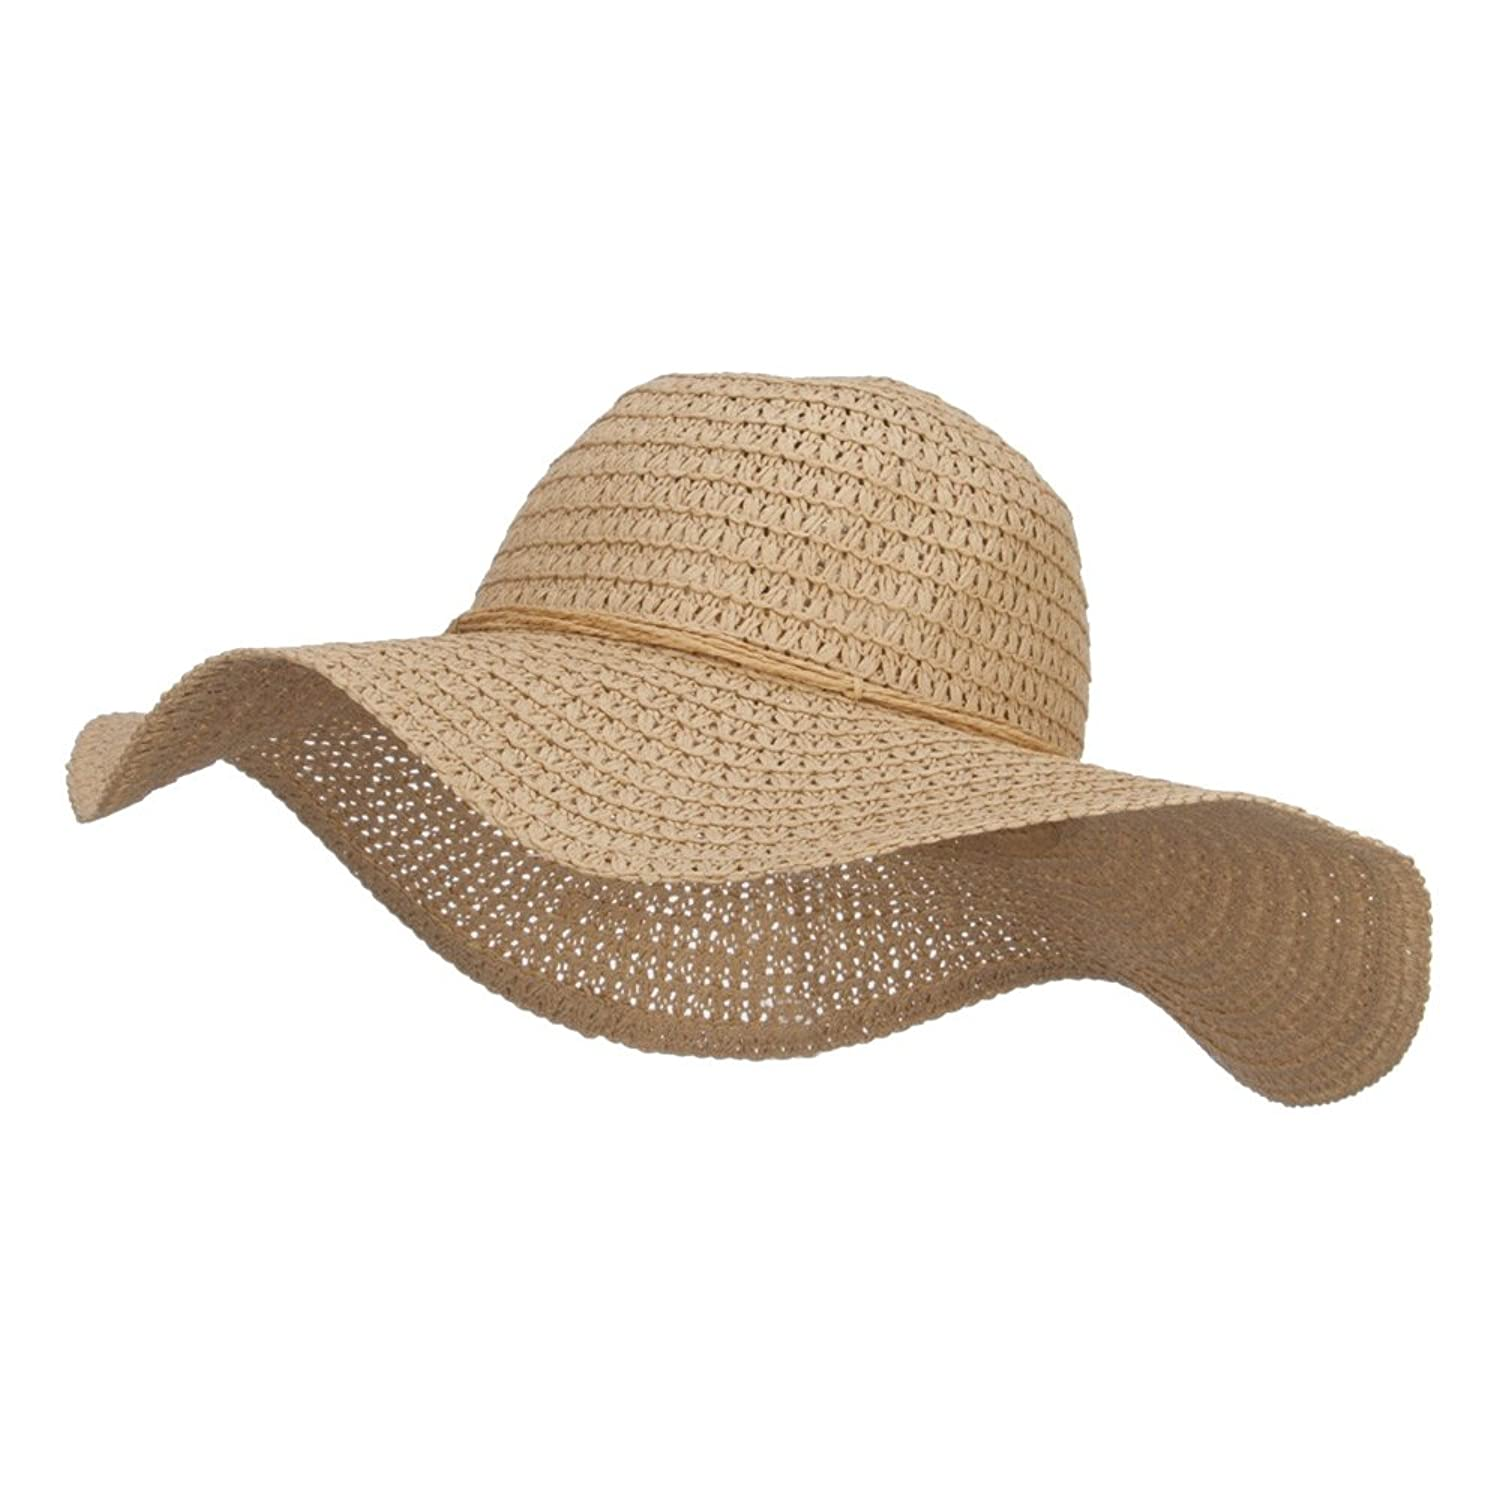 Floppy Hat with Coconut Ring Band